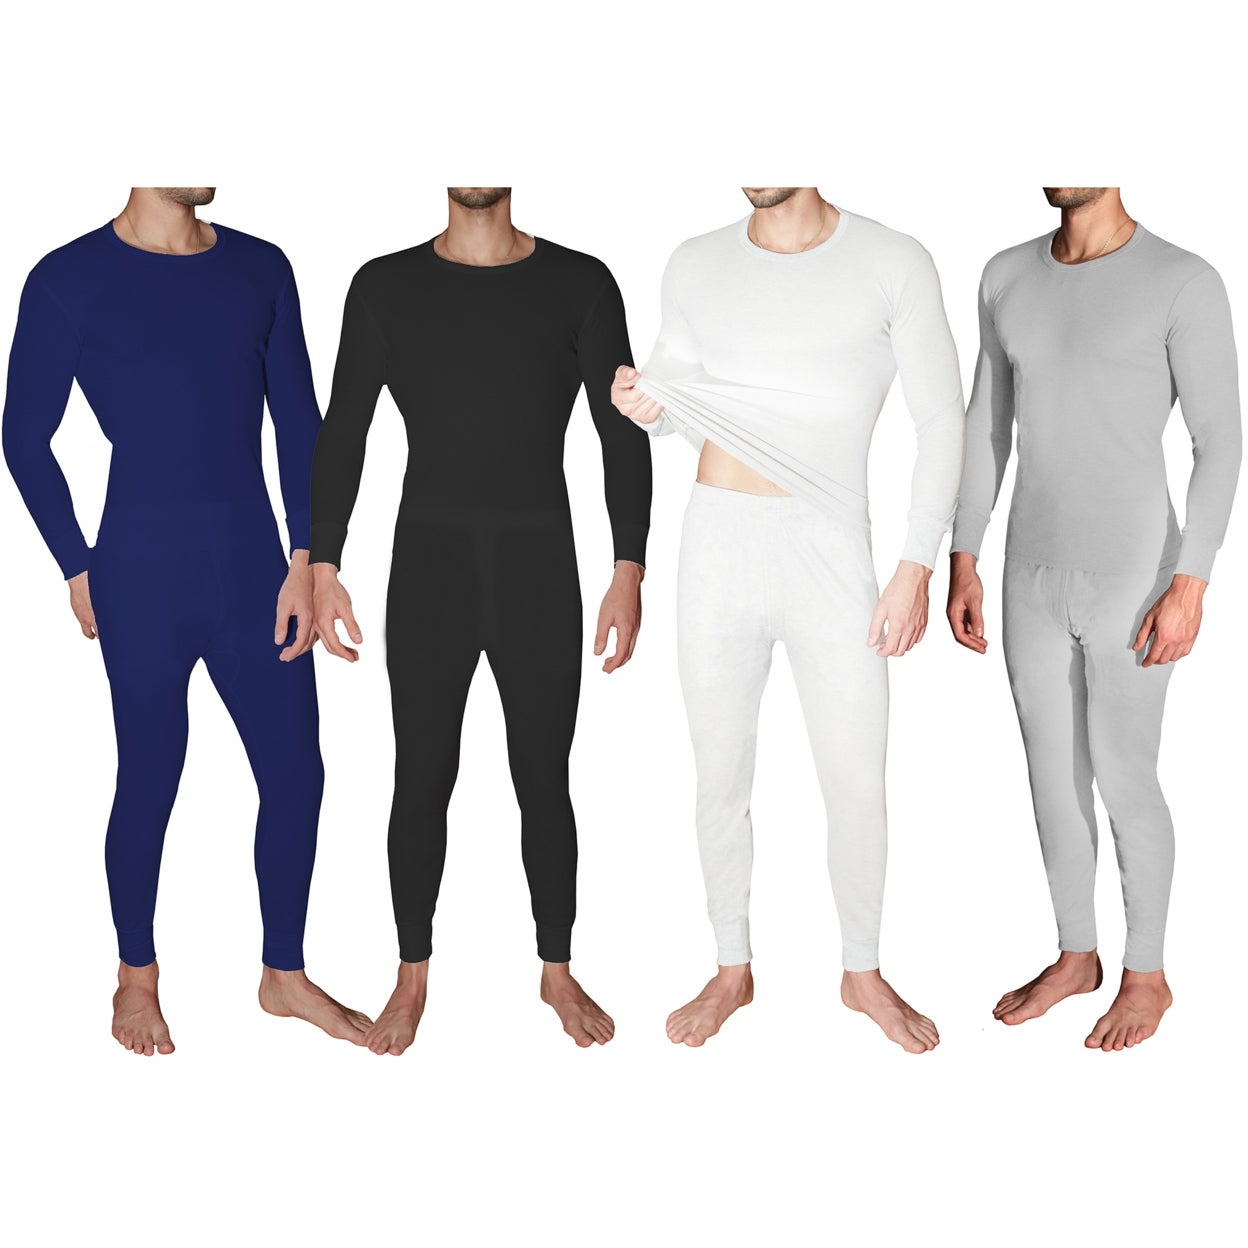 Guidelines for Buying Thermal Underwear